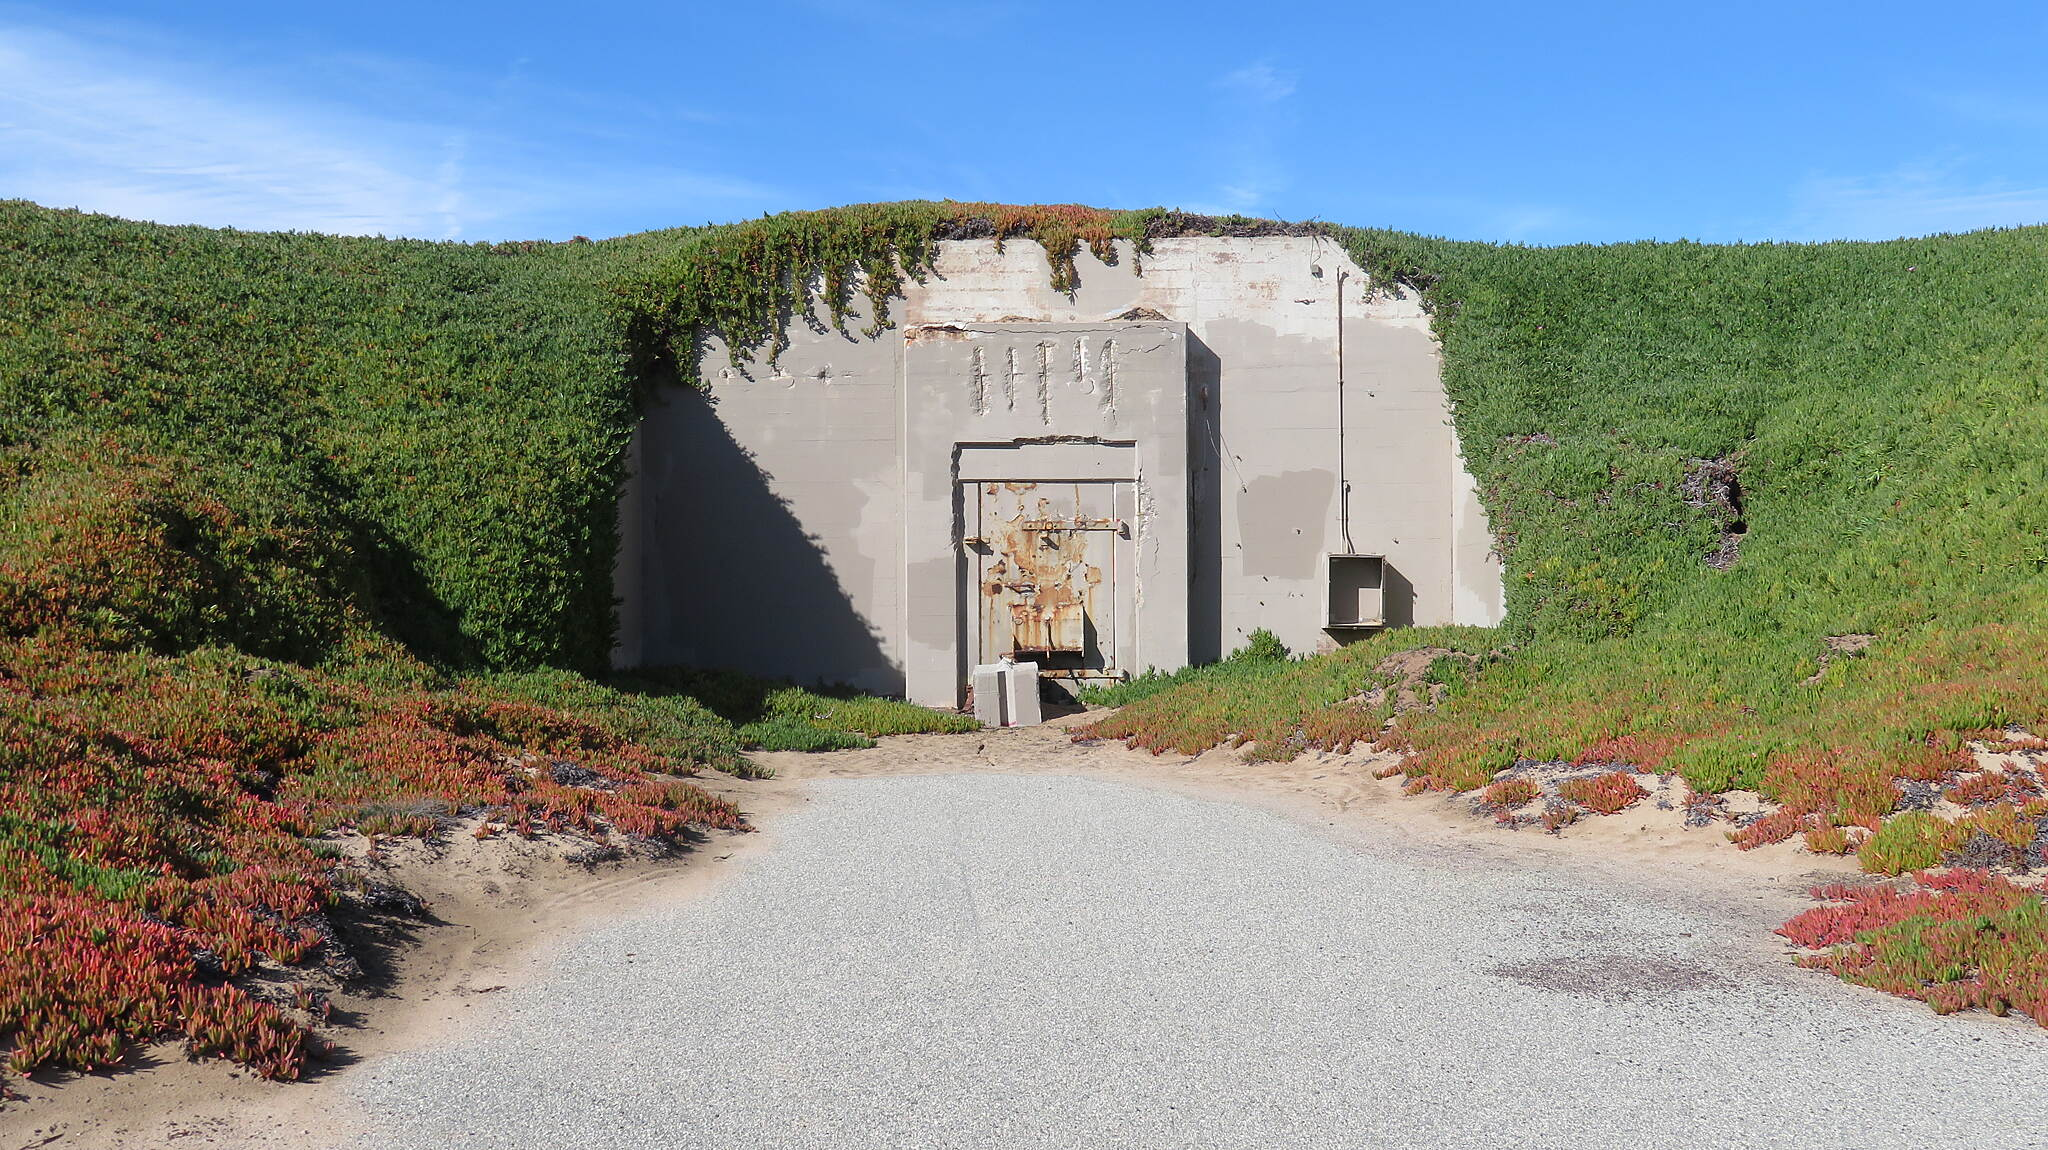 Beach Range Road Multi-Use Trail Munitions Bunker Old Fort Ord bunker